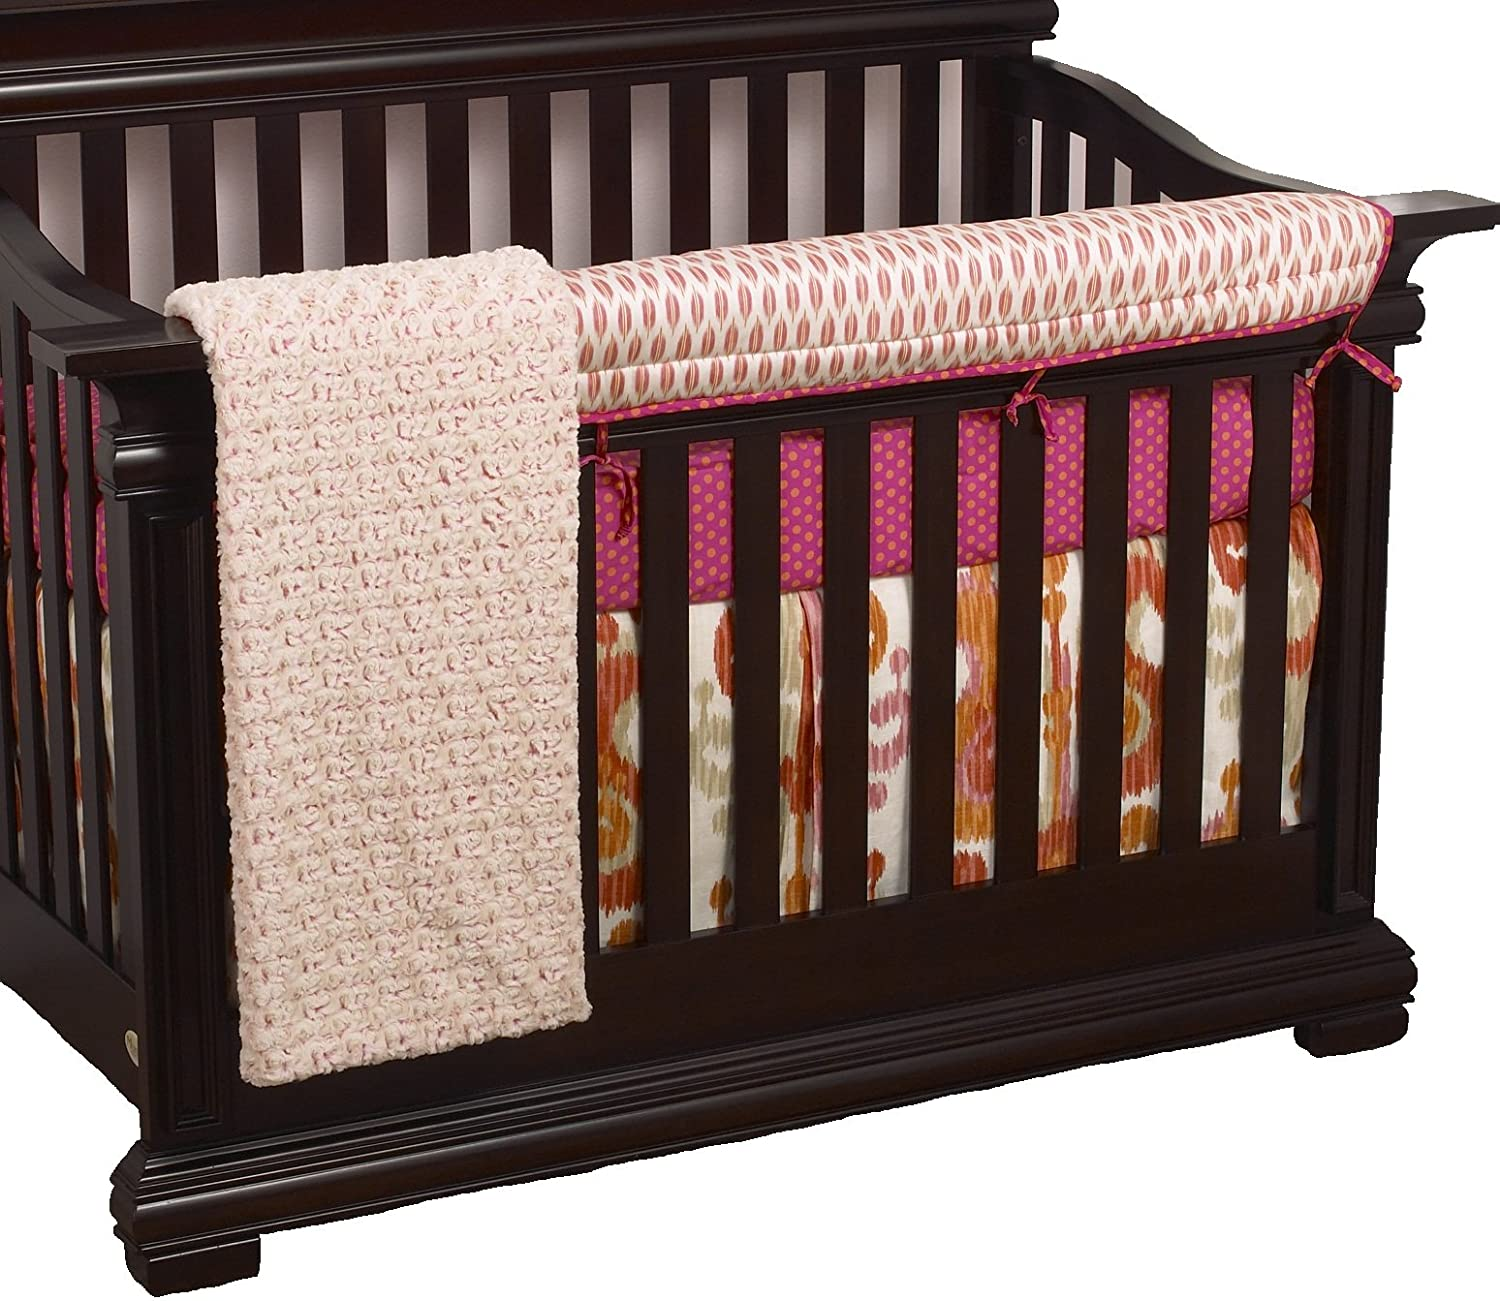 Cotton Tale Designs Front Crib Rail Cover Up Crib Bedding Set, Sundance SN4F